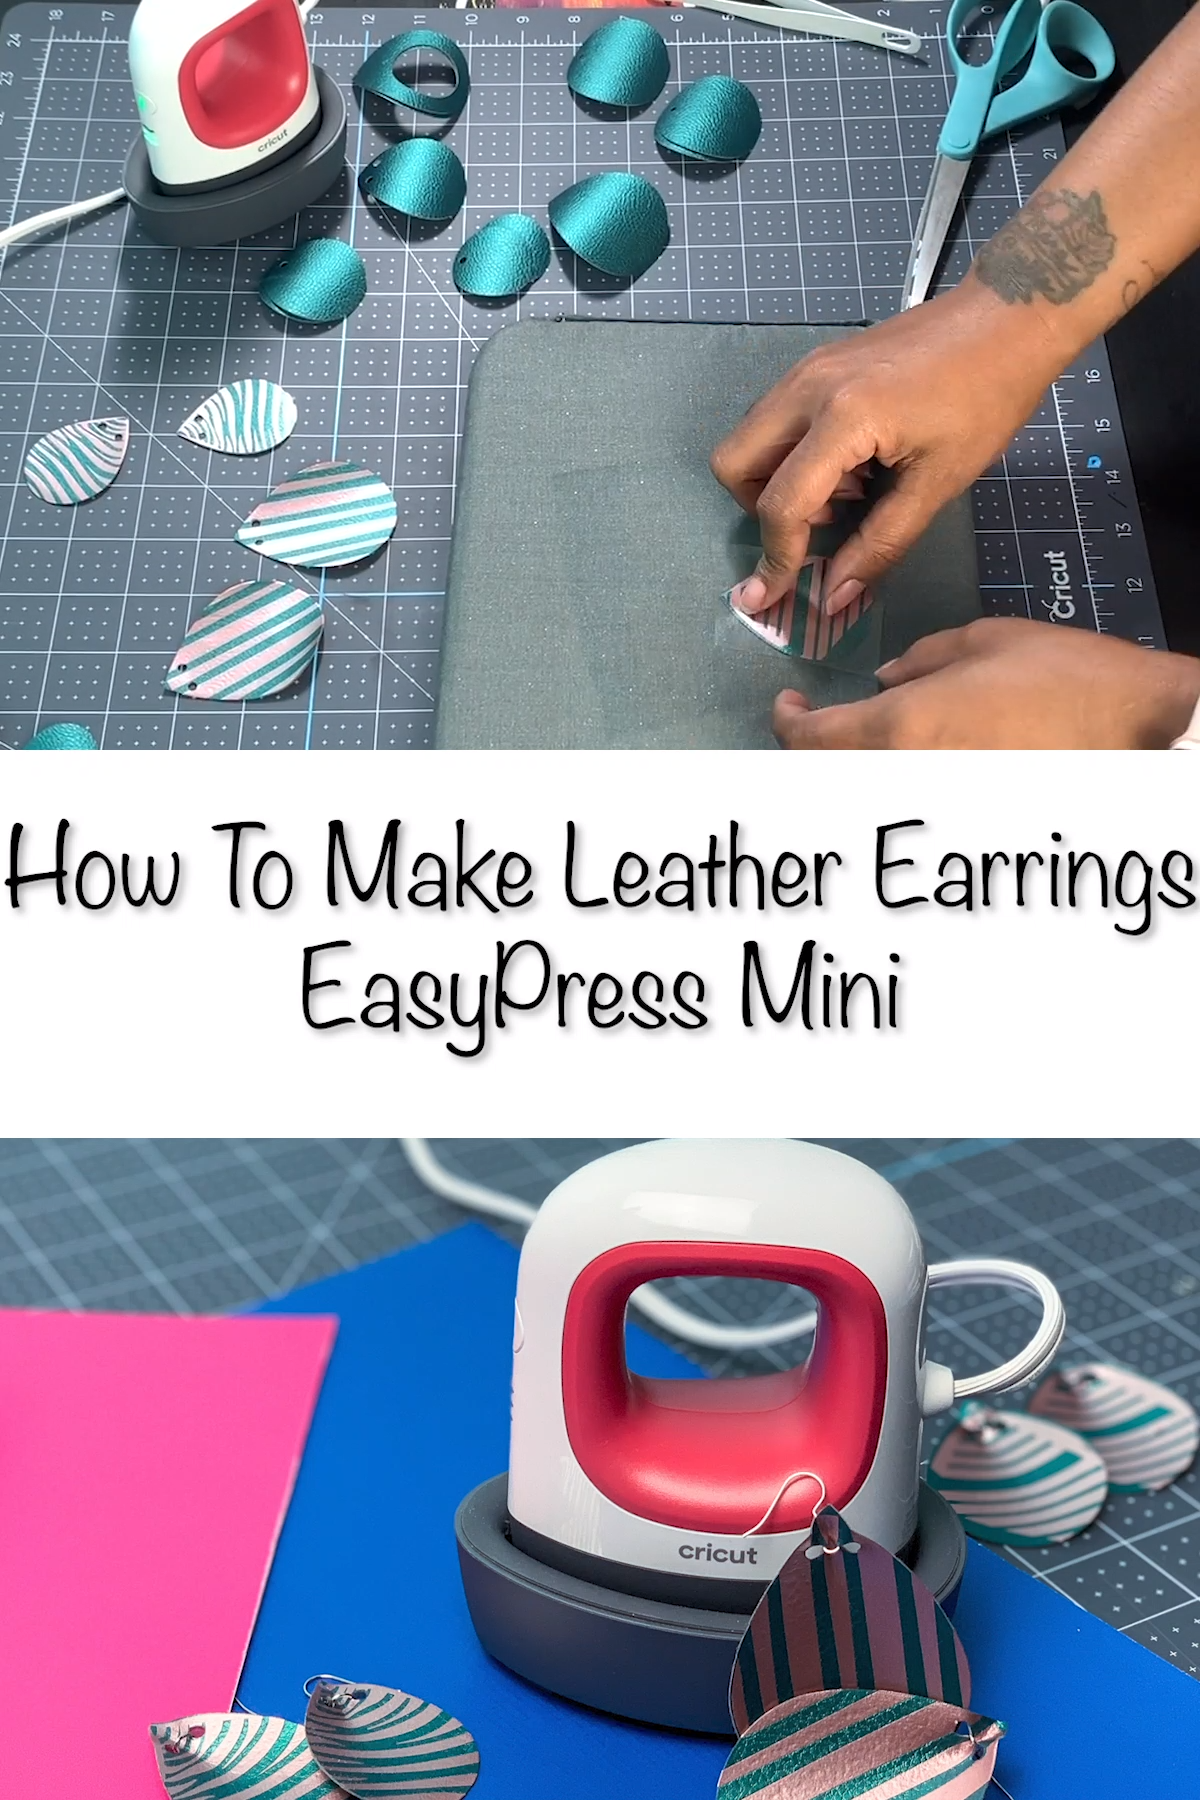 #ad Learn how to make leather earrings with a Cricut EasyPress Mini with this easy to follow guide! You'll love how simple this project is! #leatherearrings #easy #cricut #diy #howtomake #handmade #cricutcreated